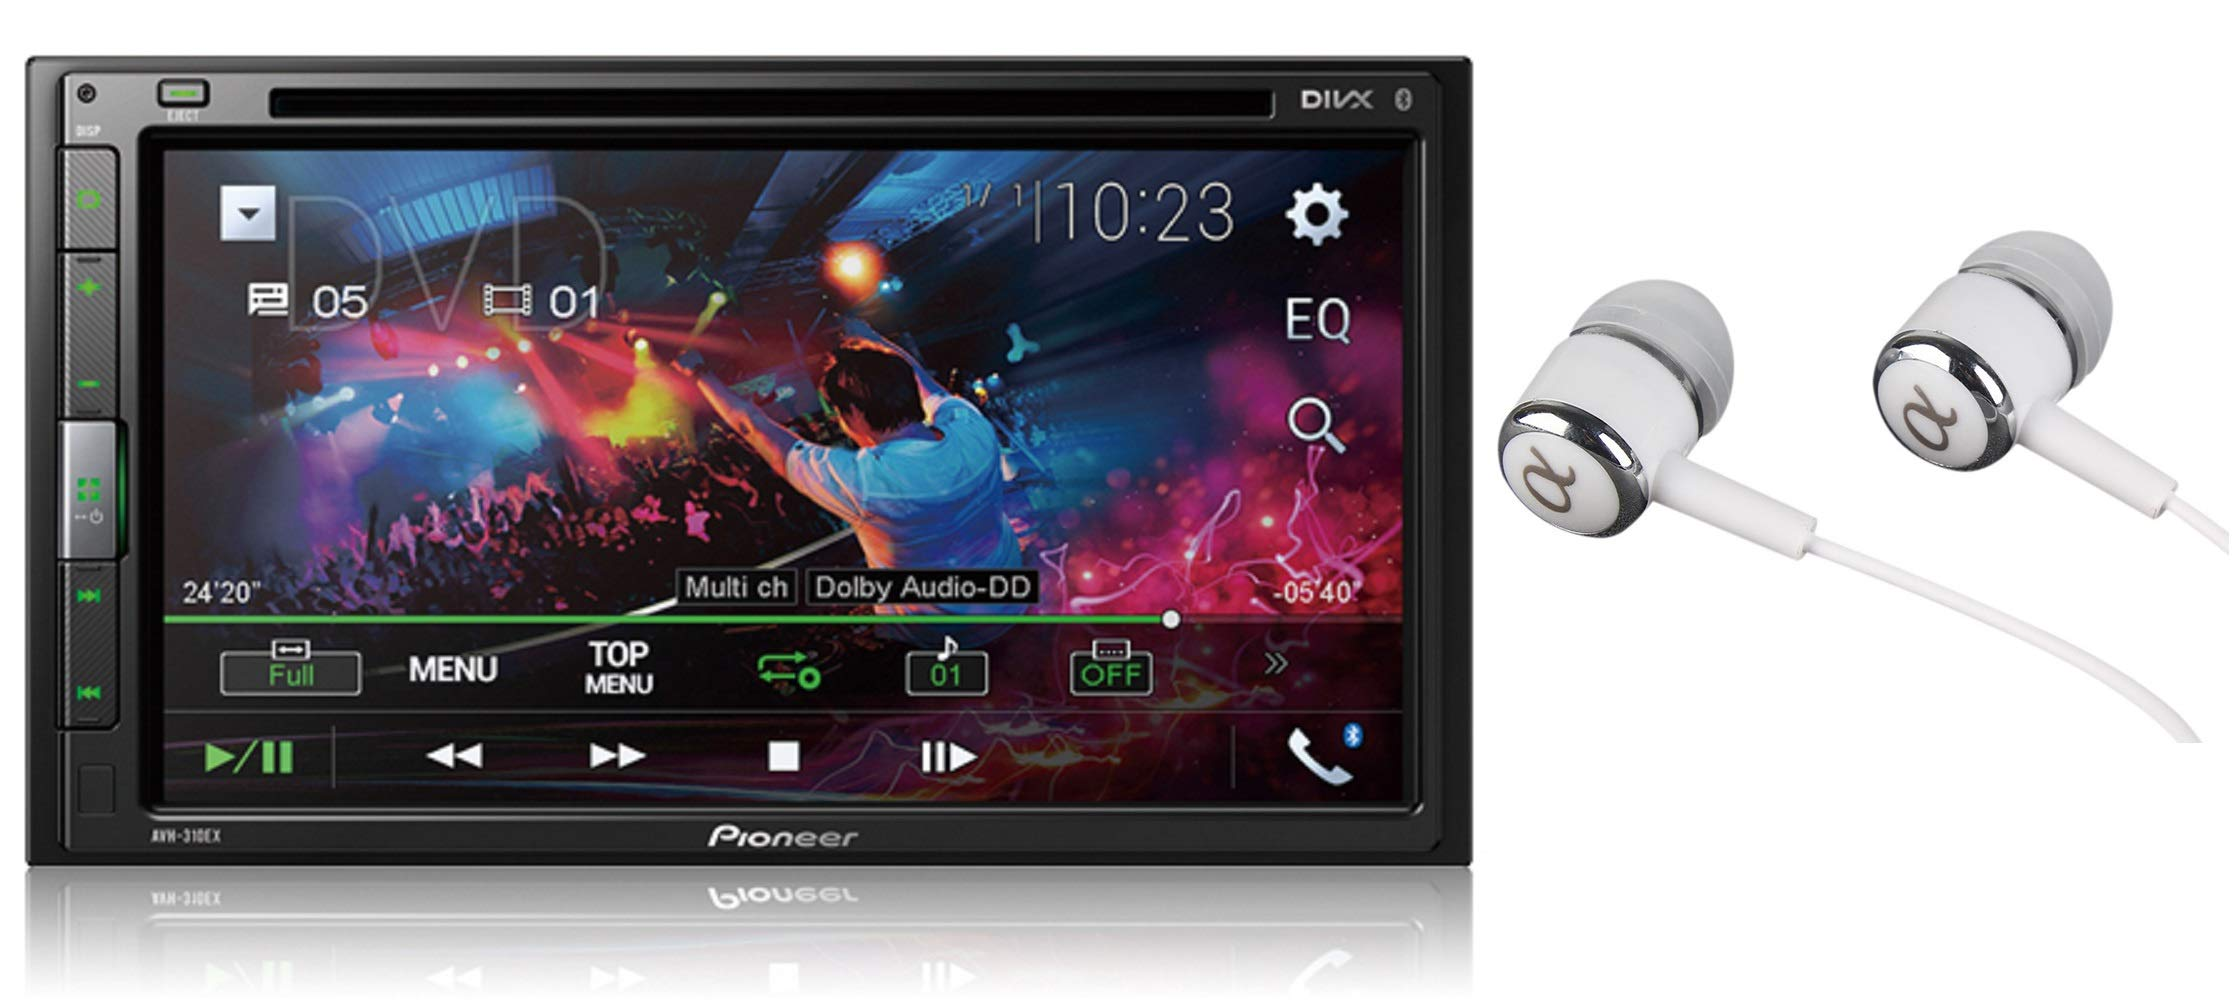 Pioneer AVH-310EX 6.8'' Double DIN Touchscreen Display, Apple iPhone and Android Music Support, Bluetooth In-Dash DVD/CD AM/FM Front USB Digital Multimedia Car Stereo Receiver /Free Alphasonik Earbuds by PIONEER